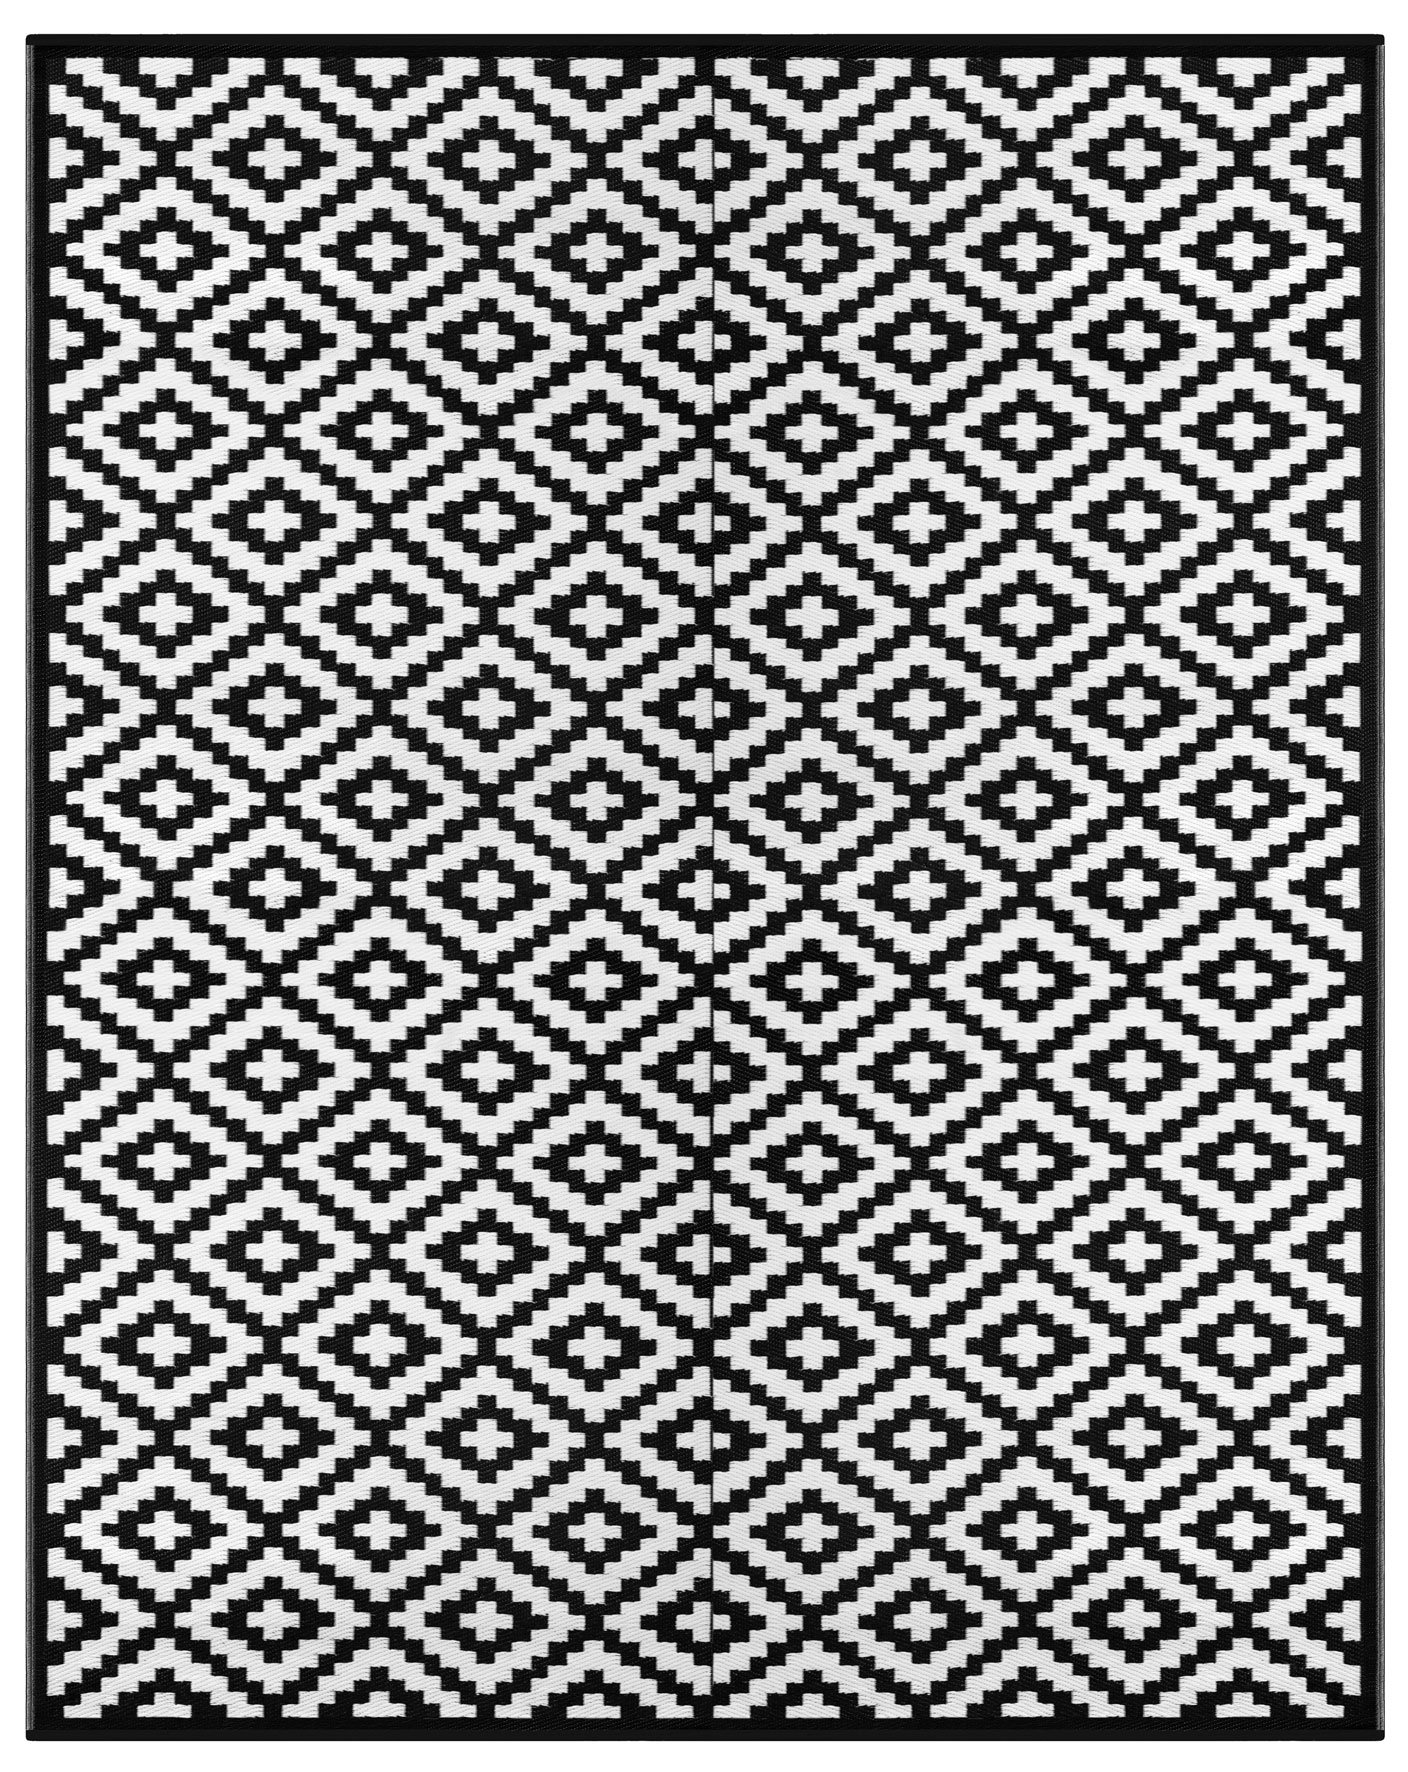 Lightweight Outdoor Reversible Plastic Nirvana Rug (8ft x10 ft, Black / White) by Green Decore